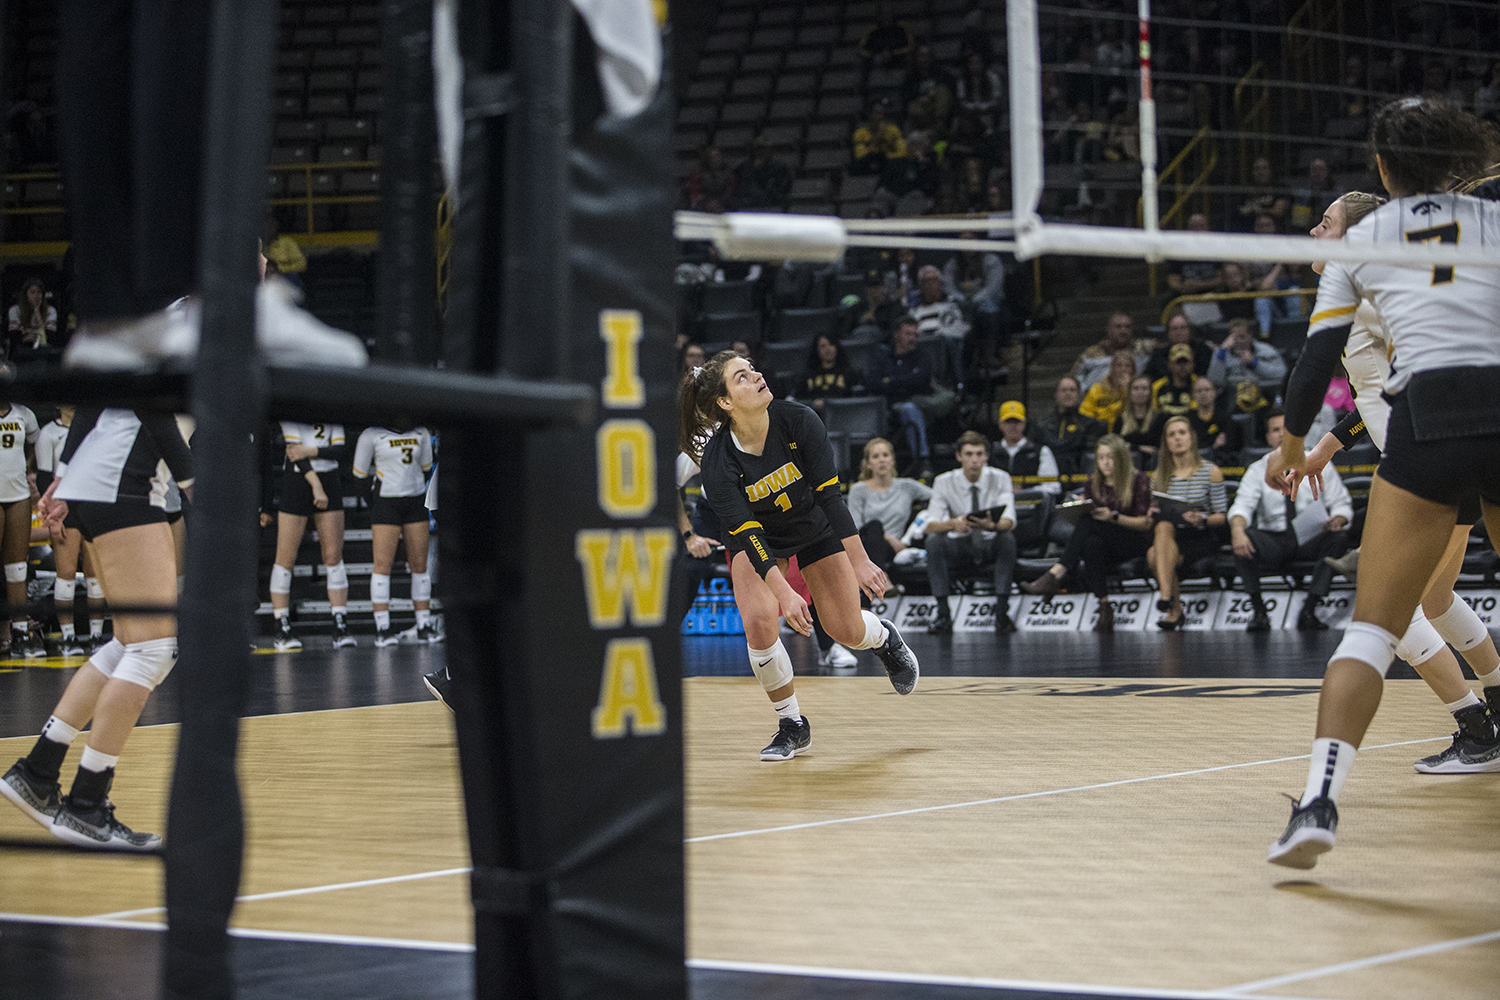 Iowa+senior+Molly+Kelly+tracks+the+ball+during+a+volleyball+match+between+Iowa+and+Penn+State+at+Carver-Hawkeye+Arena+on+Saturday%2C+Nov.+3%2C+2018.+The+Hawkeyes+were+shut+out+by+the+Nittany+Lions%2C+3-0.